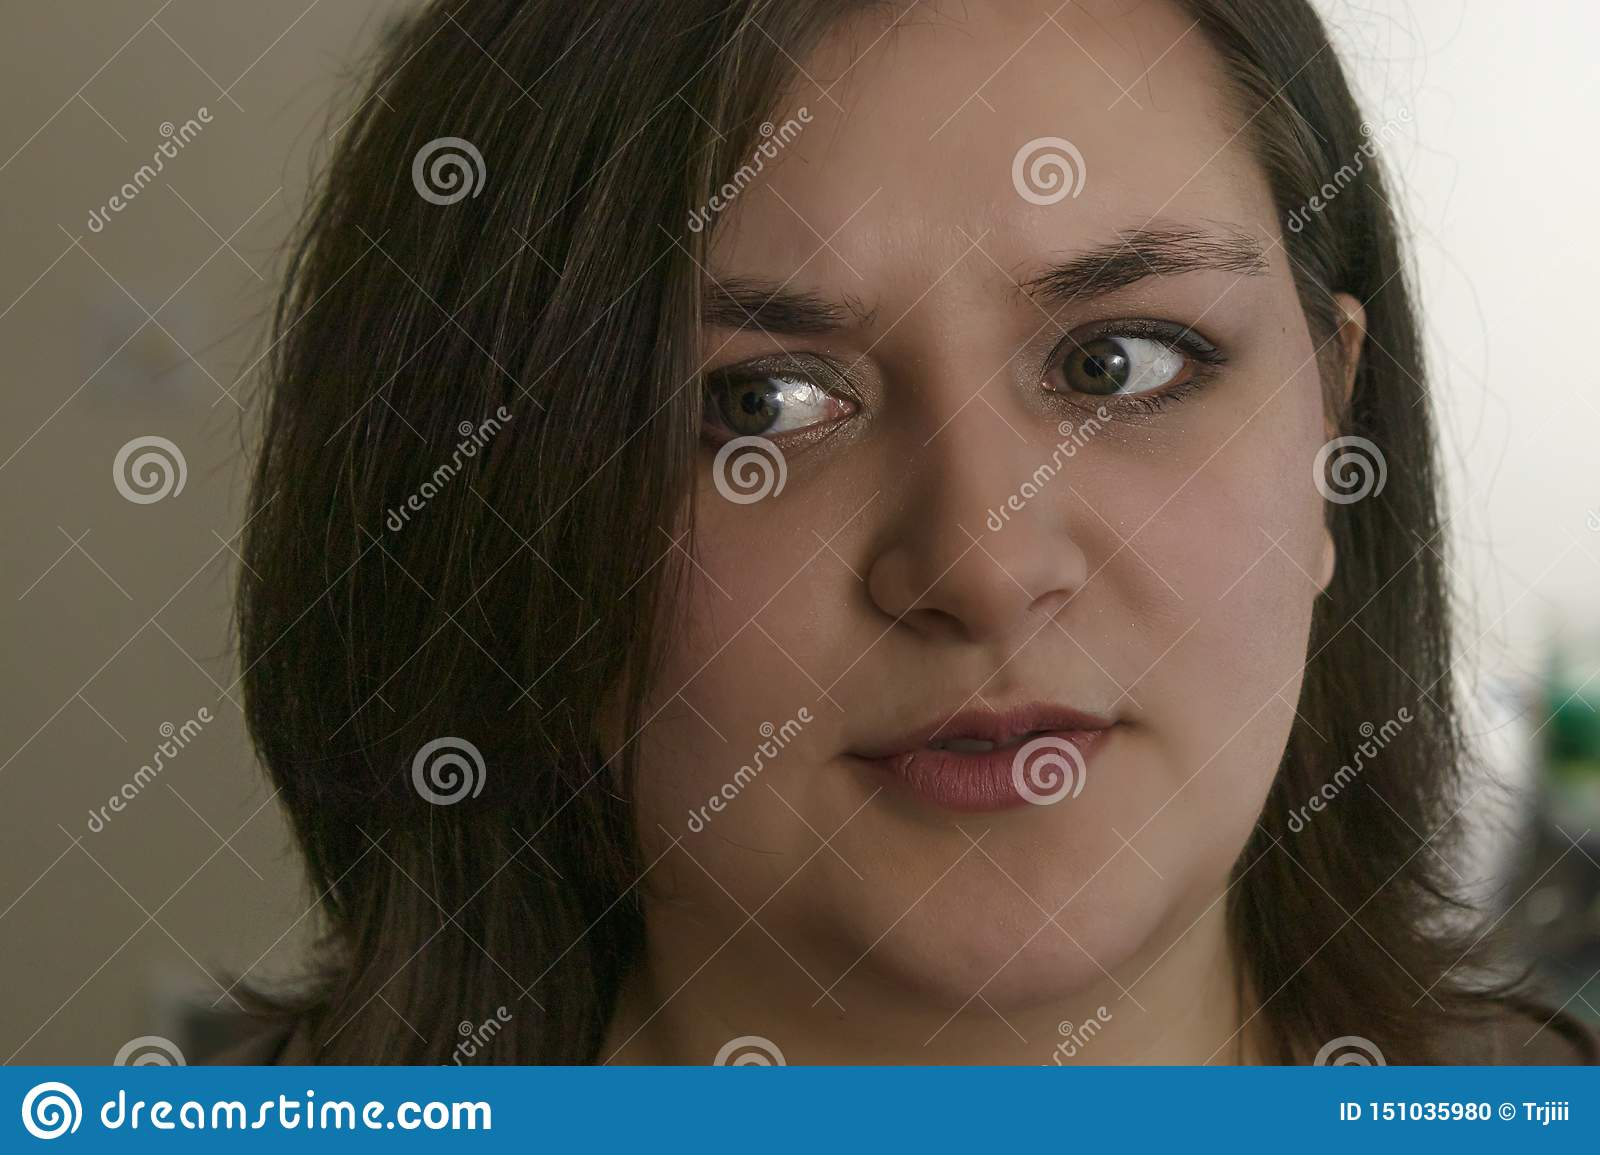 Girl looks of to the side questioningly wondering about something